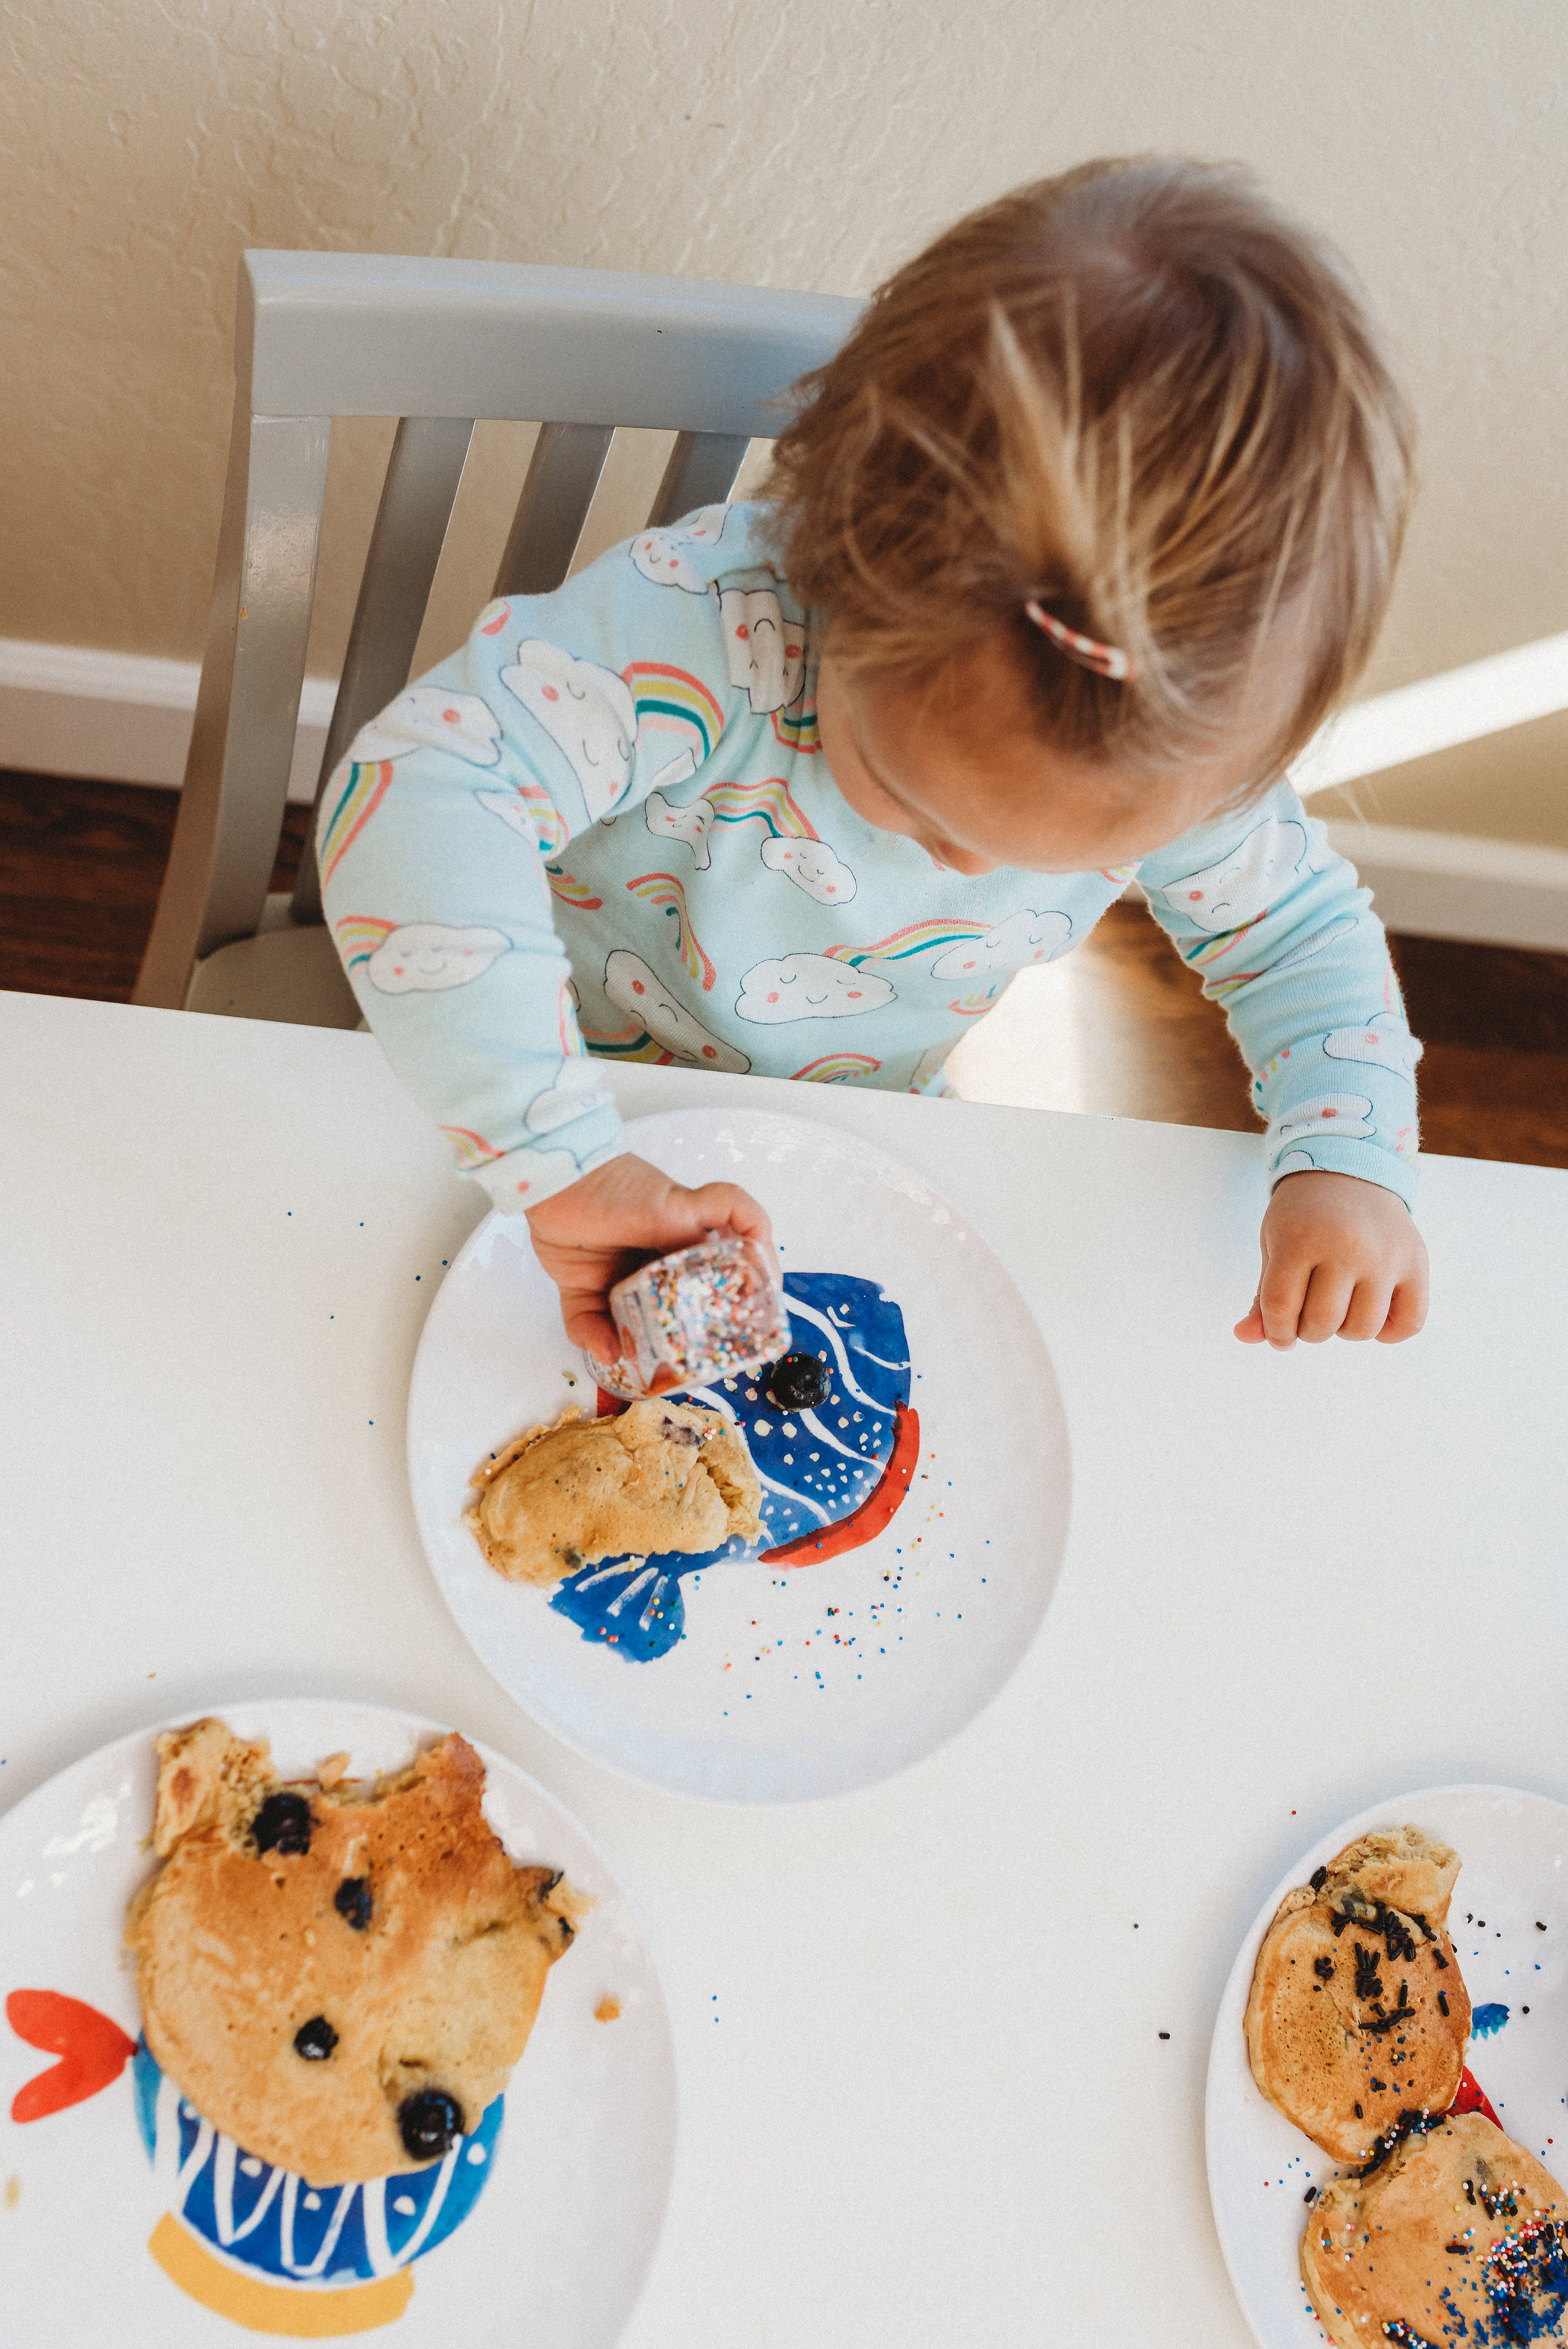 family pancakes morning routine mom of two toddlers pj mornings family time quality time39.jpg